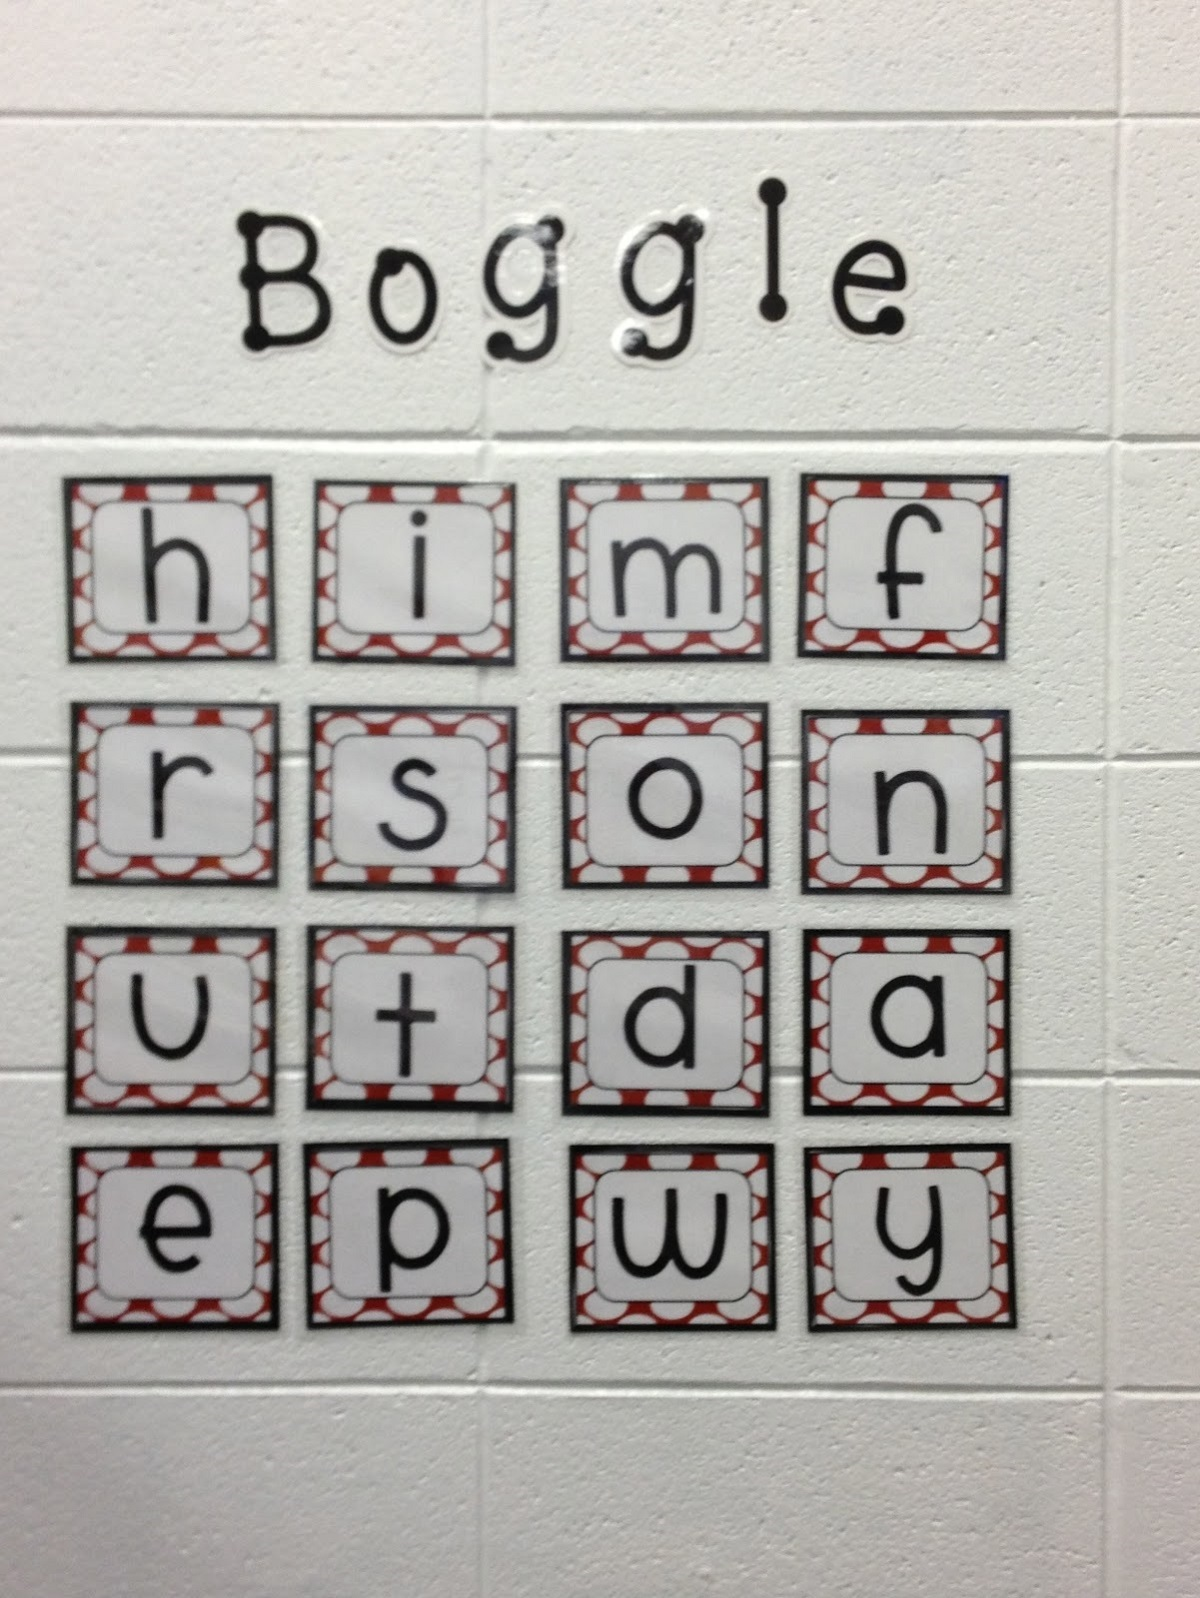 Word Games Boggle Board